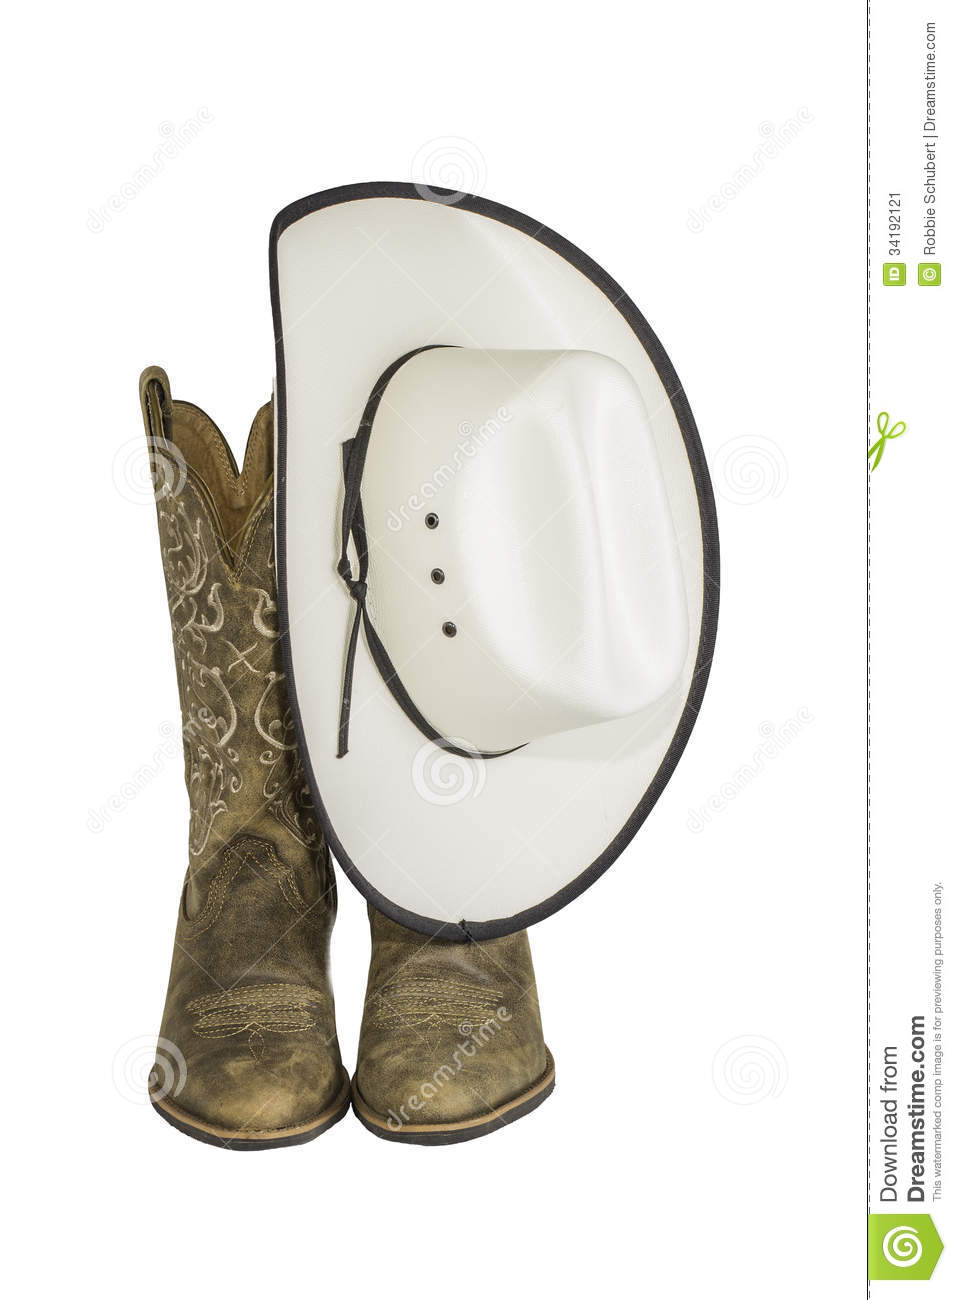 c900281d71c A pair of brown western boots and cowboy hat isolated on a white background